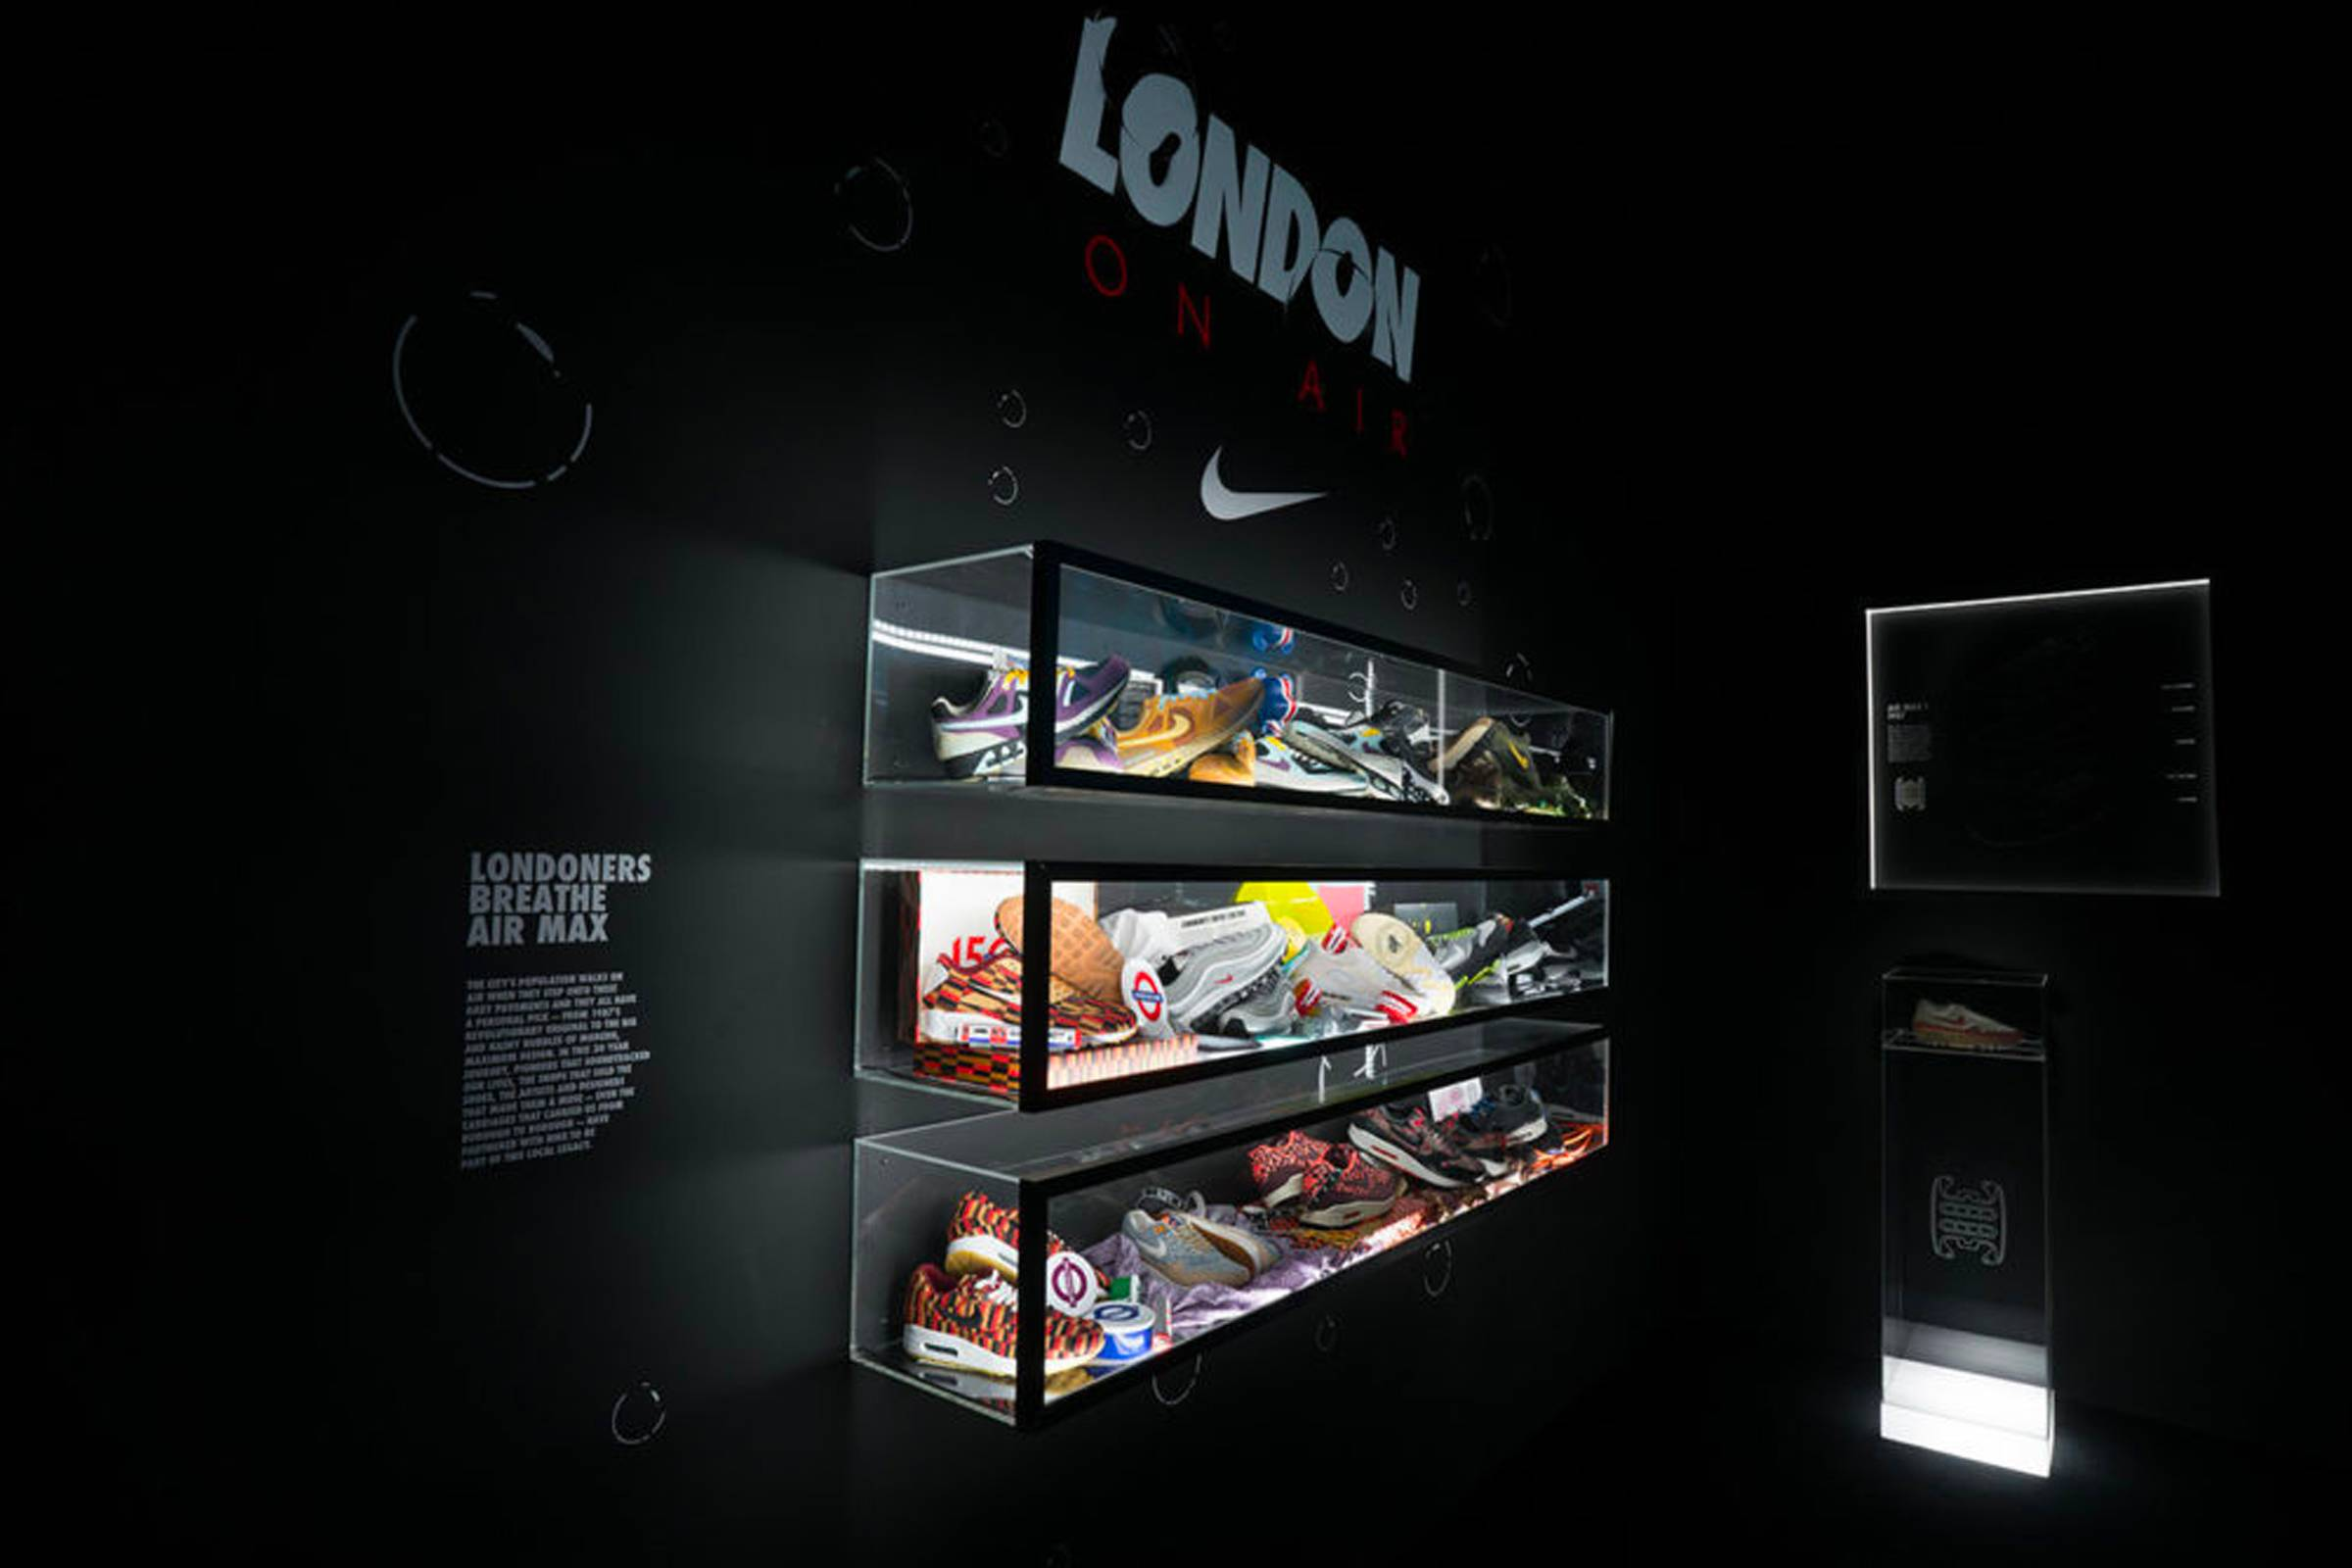 Nothing Beats a Londoner: Nike's Love Affair With London